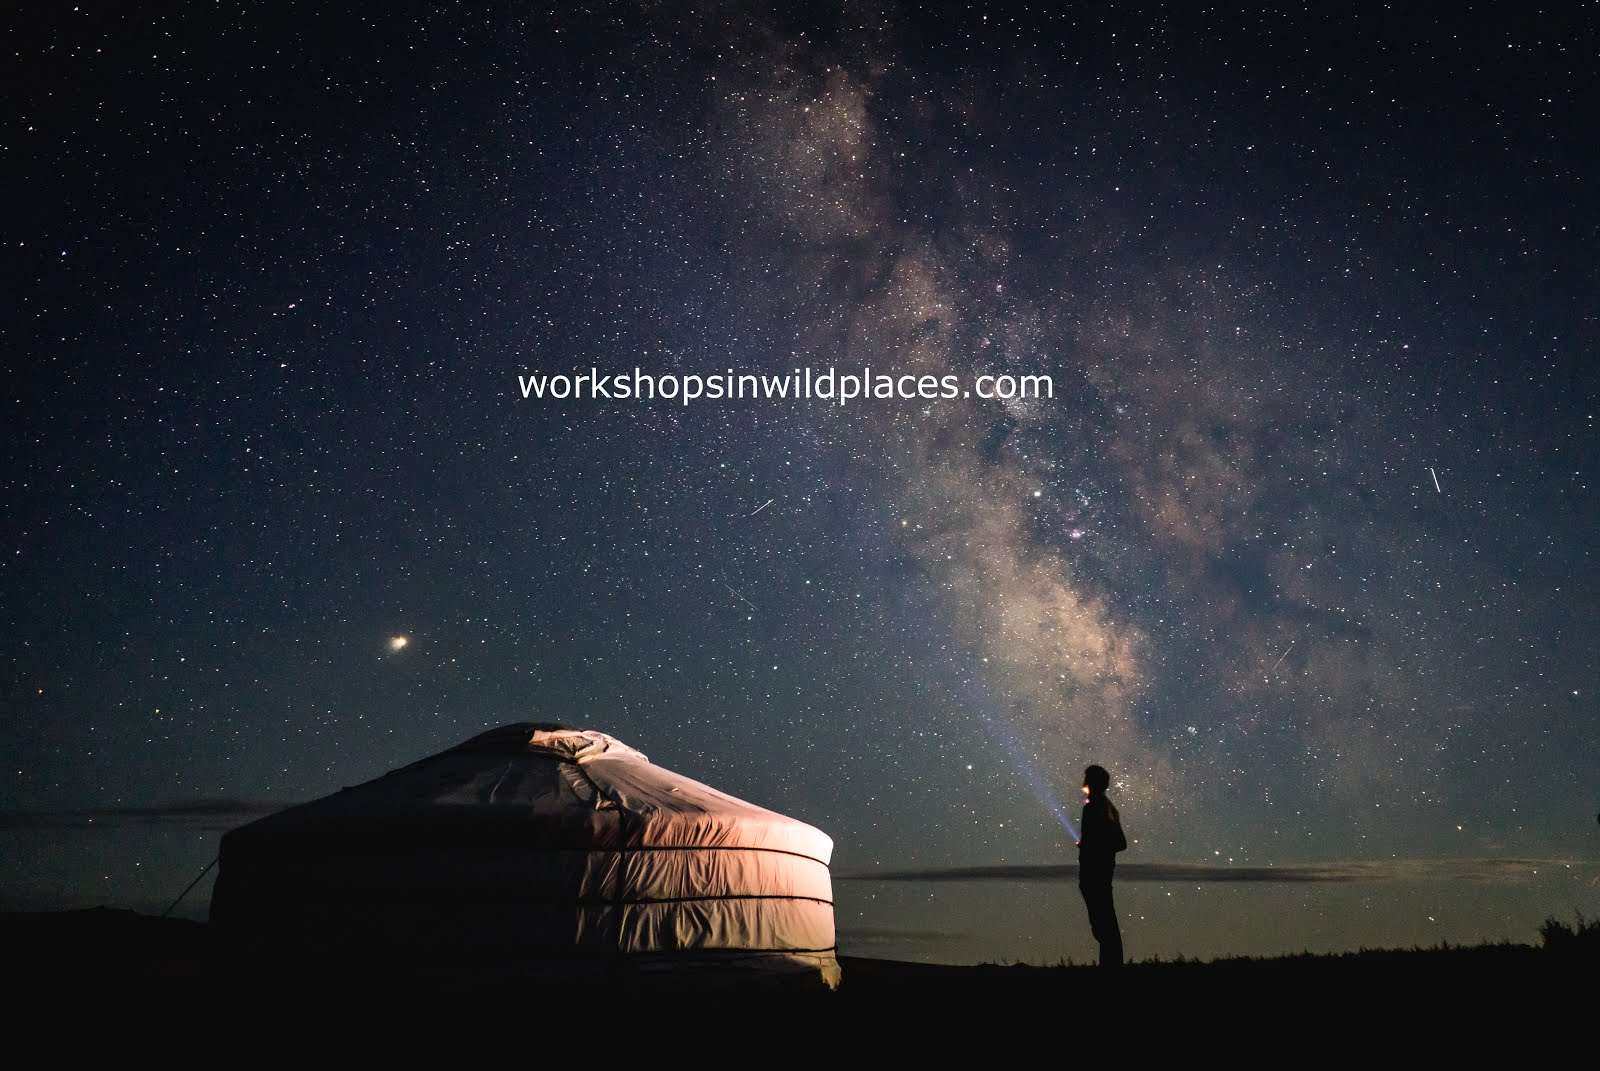 Check out my Workshops in Wild Places adventures